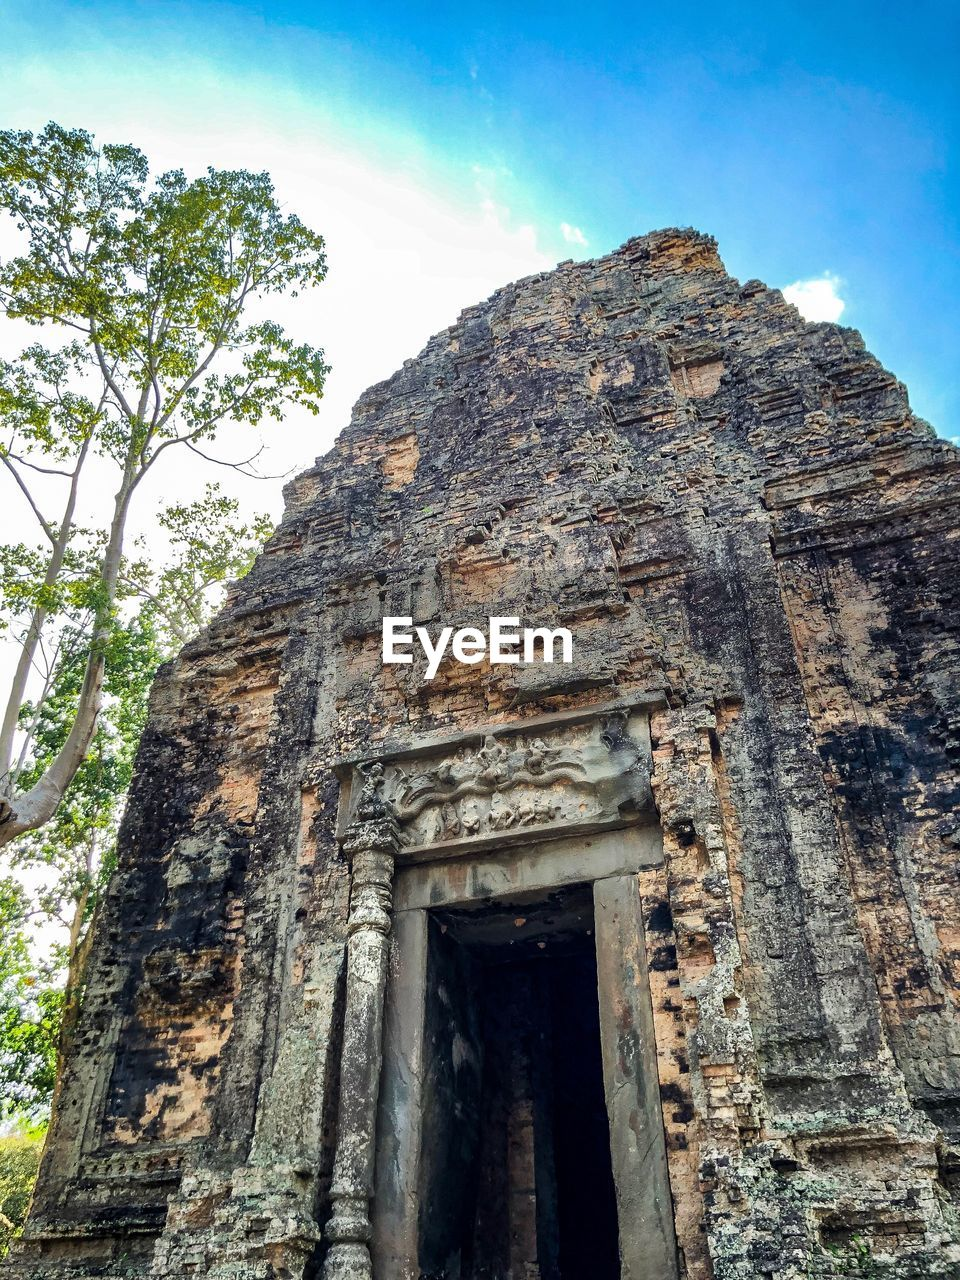 architecture, built structure, low angle view, history, sky, the past, building, old, ancient, no people, building exterior, day, weathered, belief, ancient civilization, old ruin, place of worship, religion, nature, tree, outdoors, archaeology, deterioration, ruined